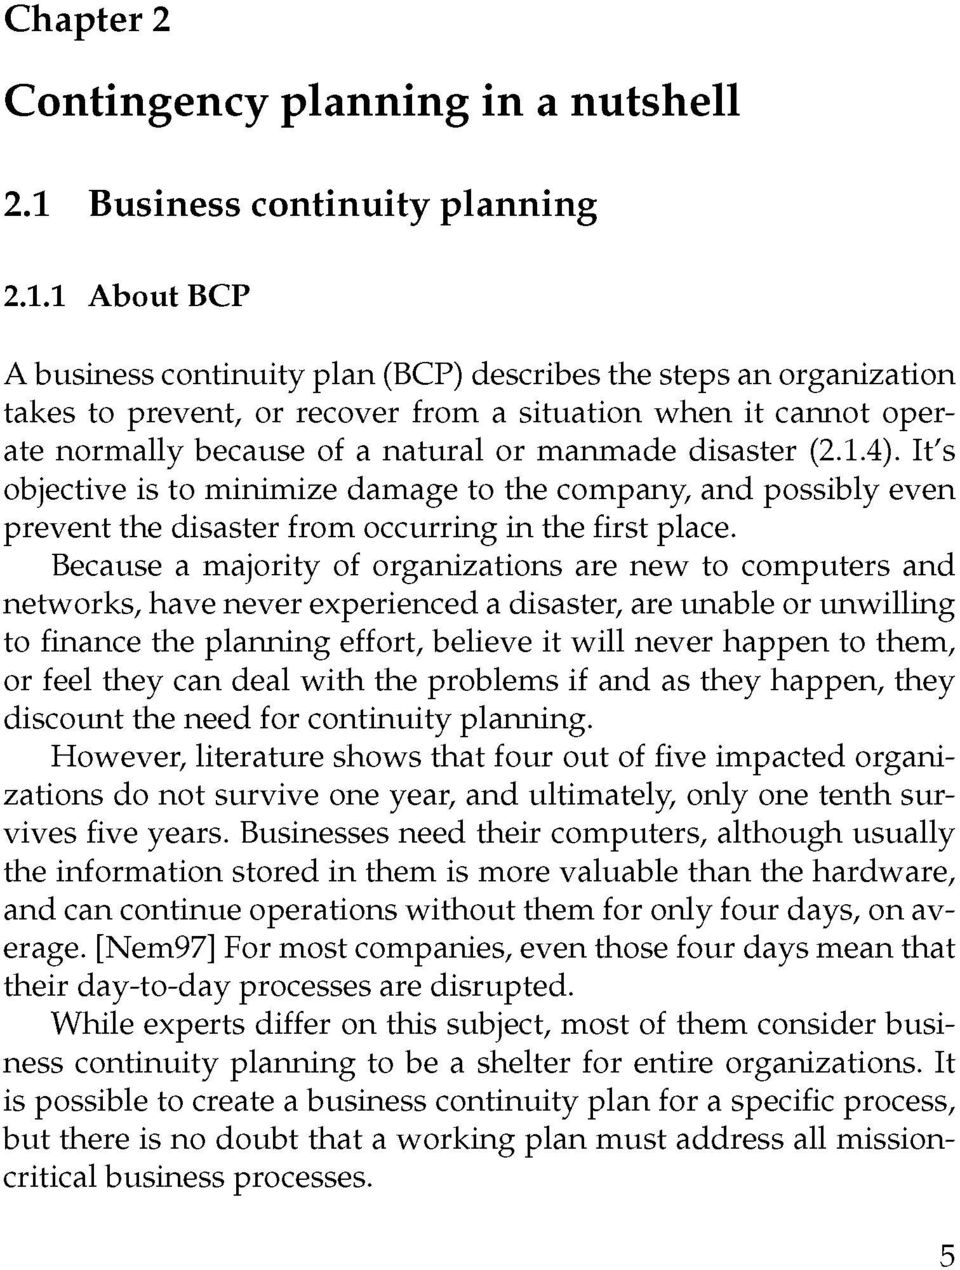 1 About BCP A business continuity plan (BCP) describes the steps an organization takes to prevent, or recover from a situation when it cannot operate normally because of a natural or manmade disaster